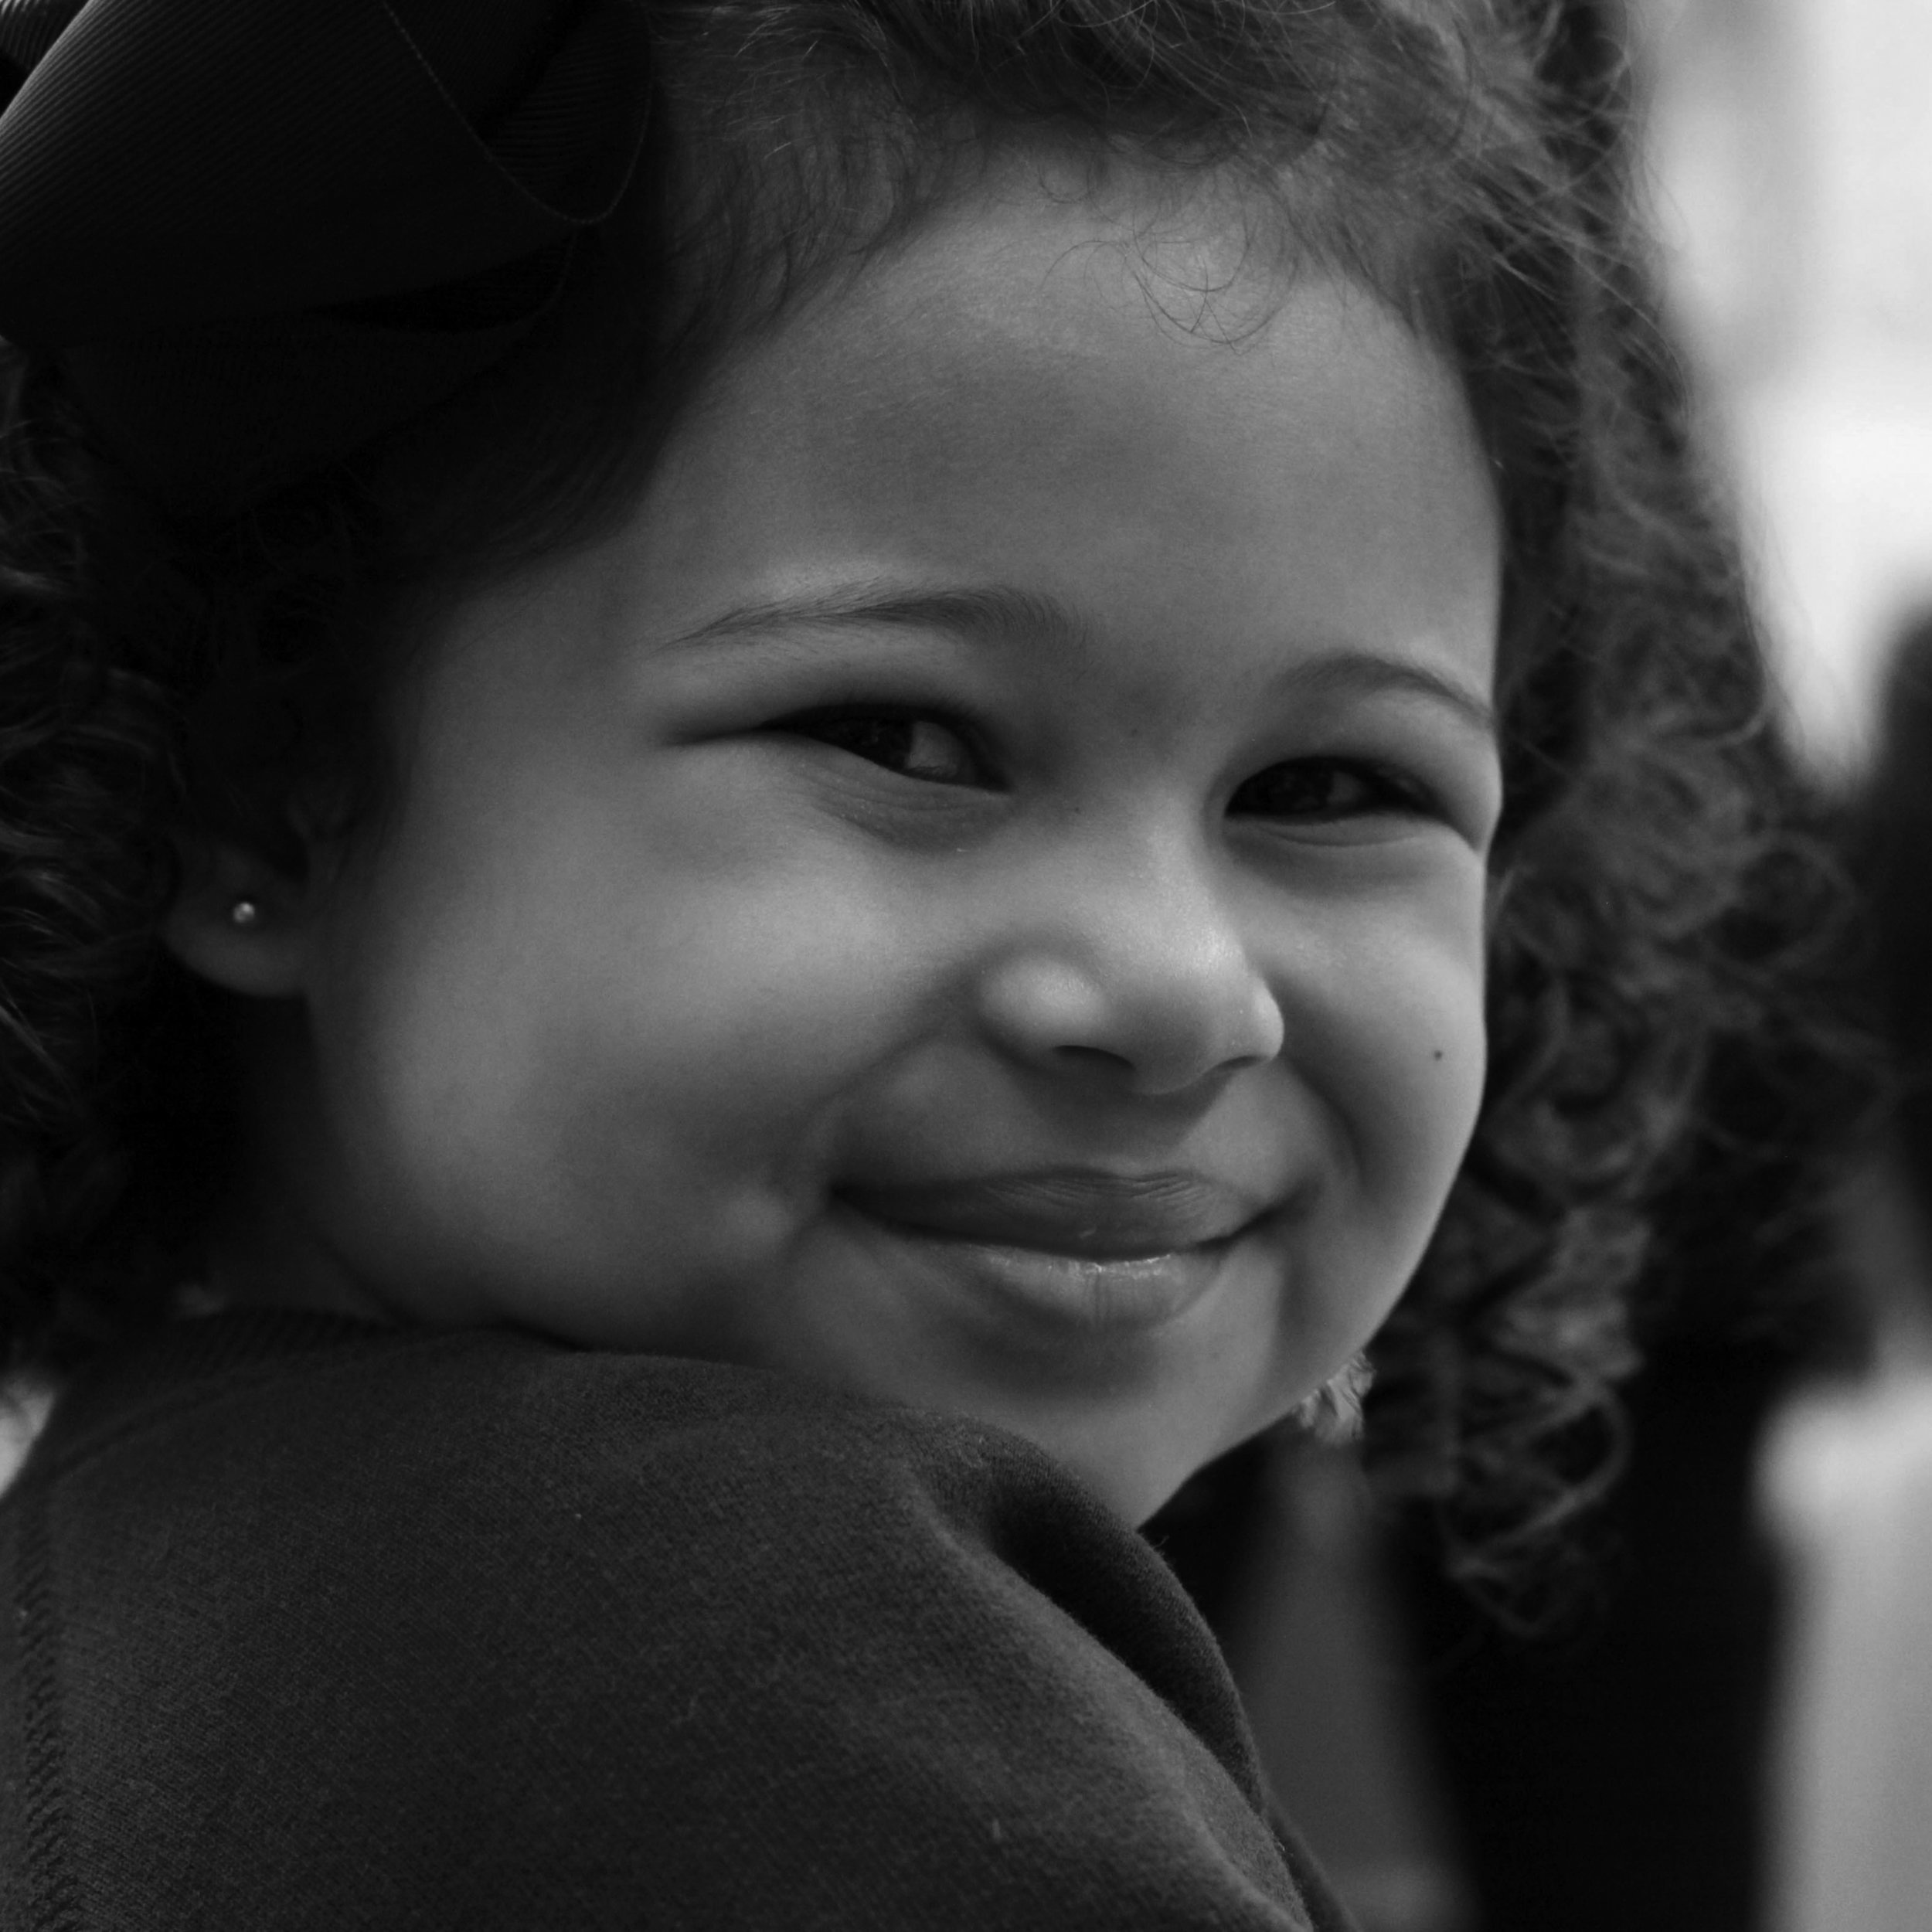 A child smiles for the camera.